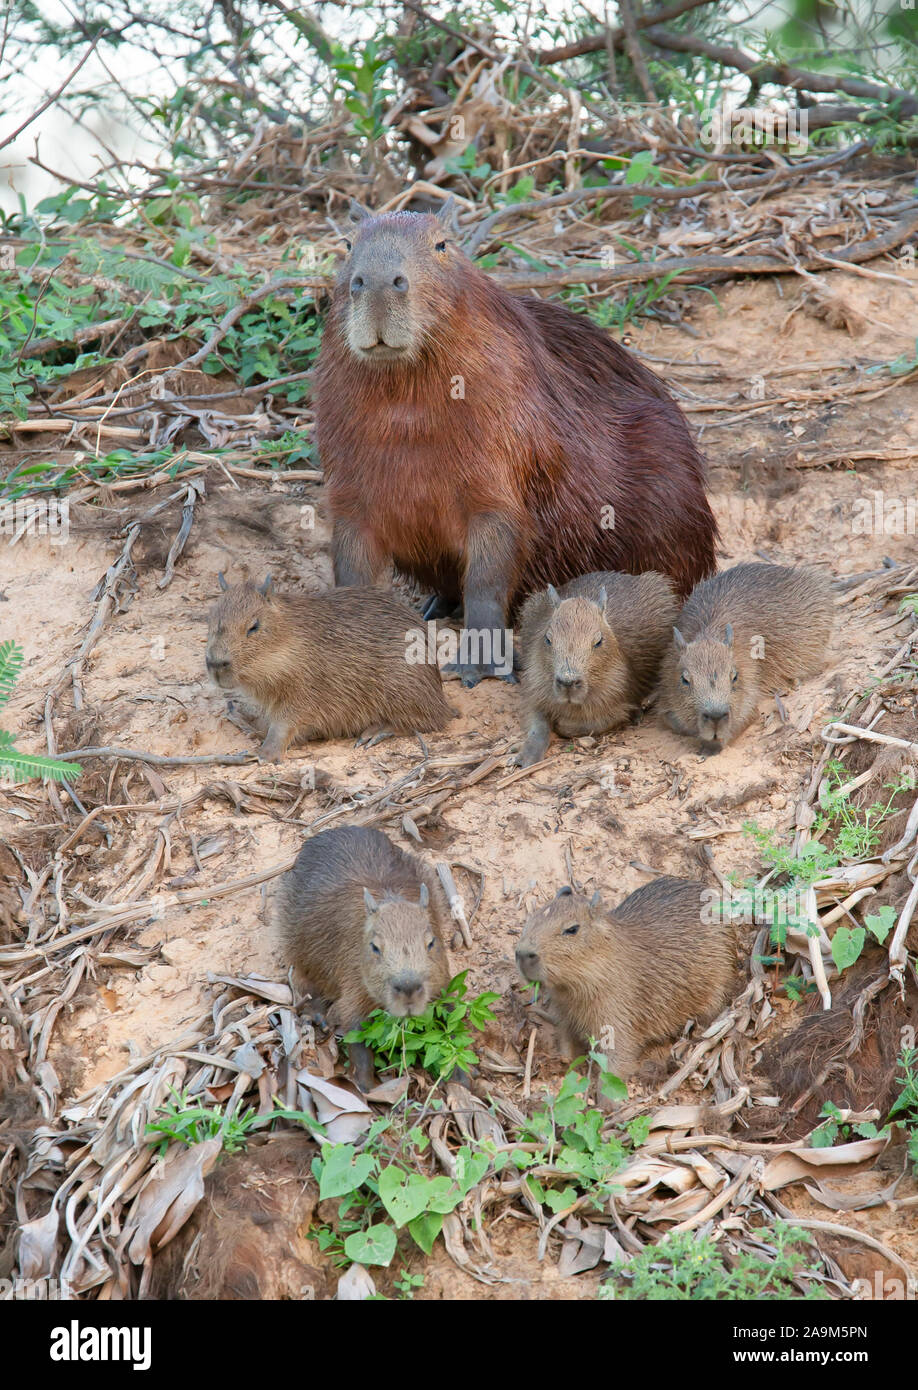 Close up of Capybara mother with five babies, sitting on a river bank, North Pantanal, Brazil. Stock Photo